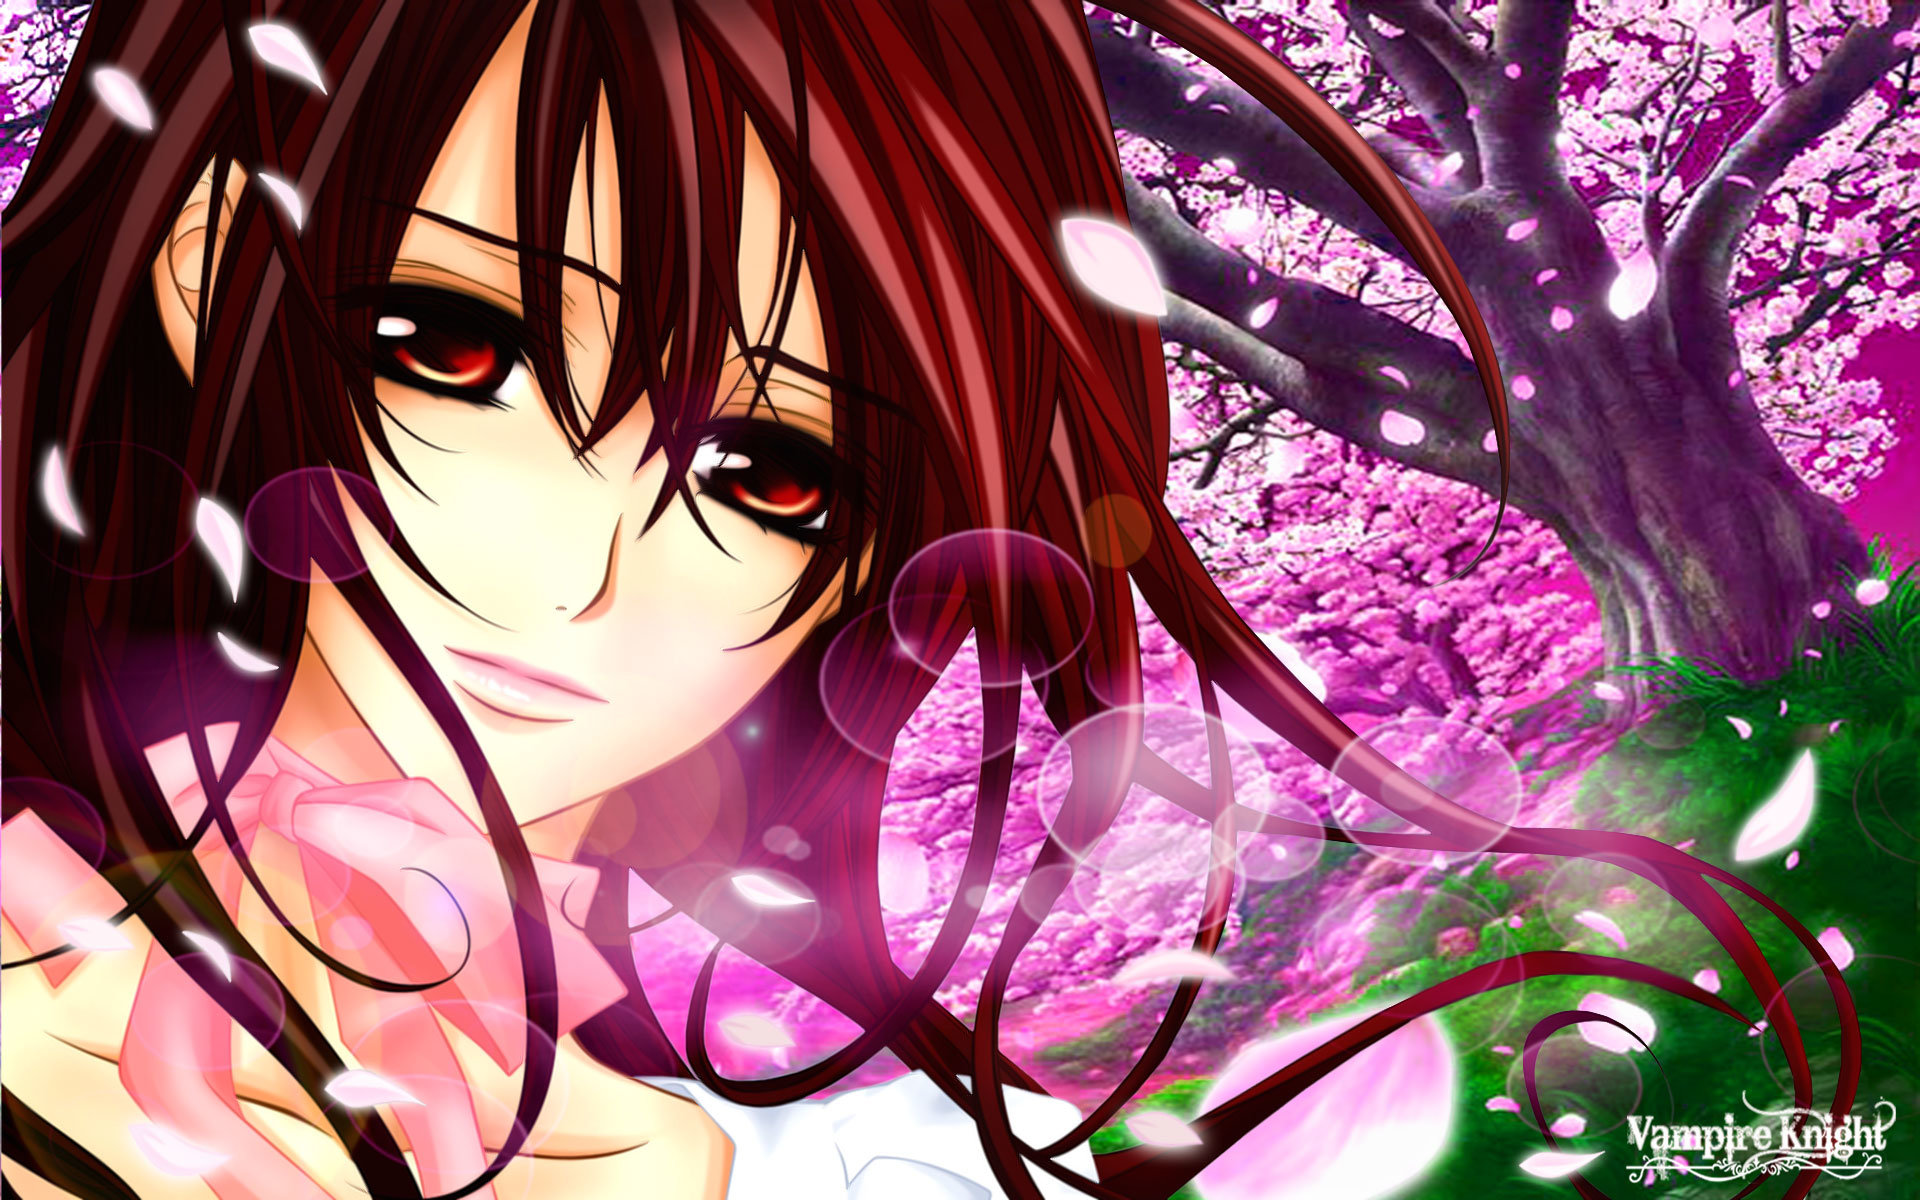 Download hd 1920x1200 Vampire Knight PC wallpaper ID:390534 for free